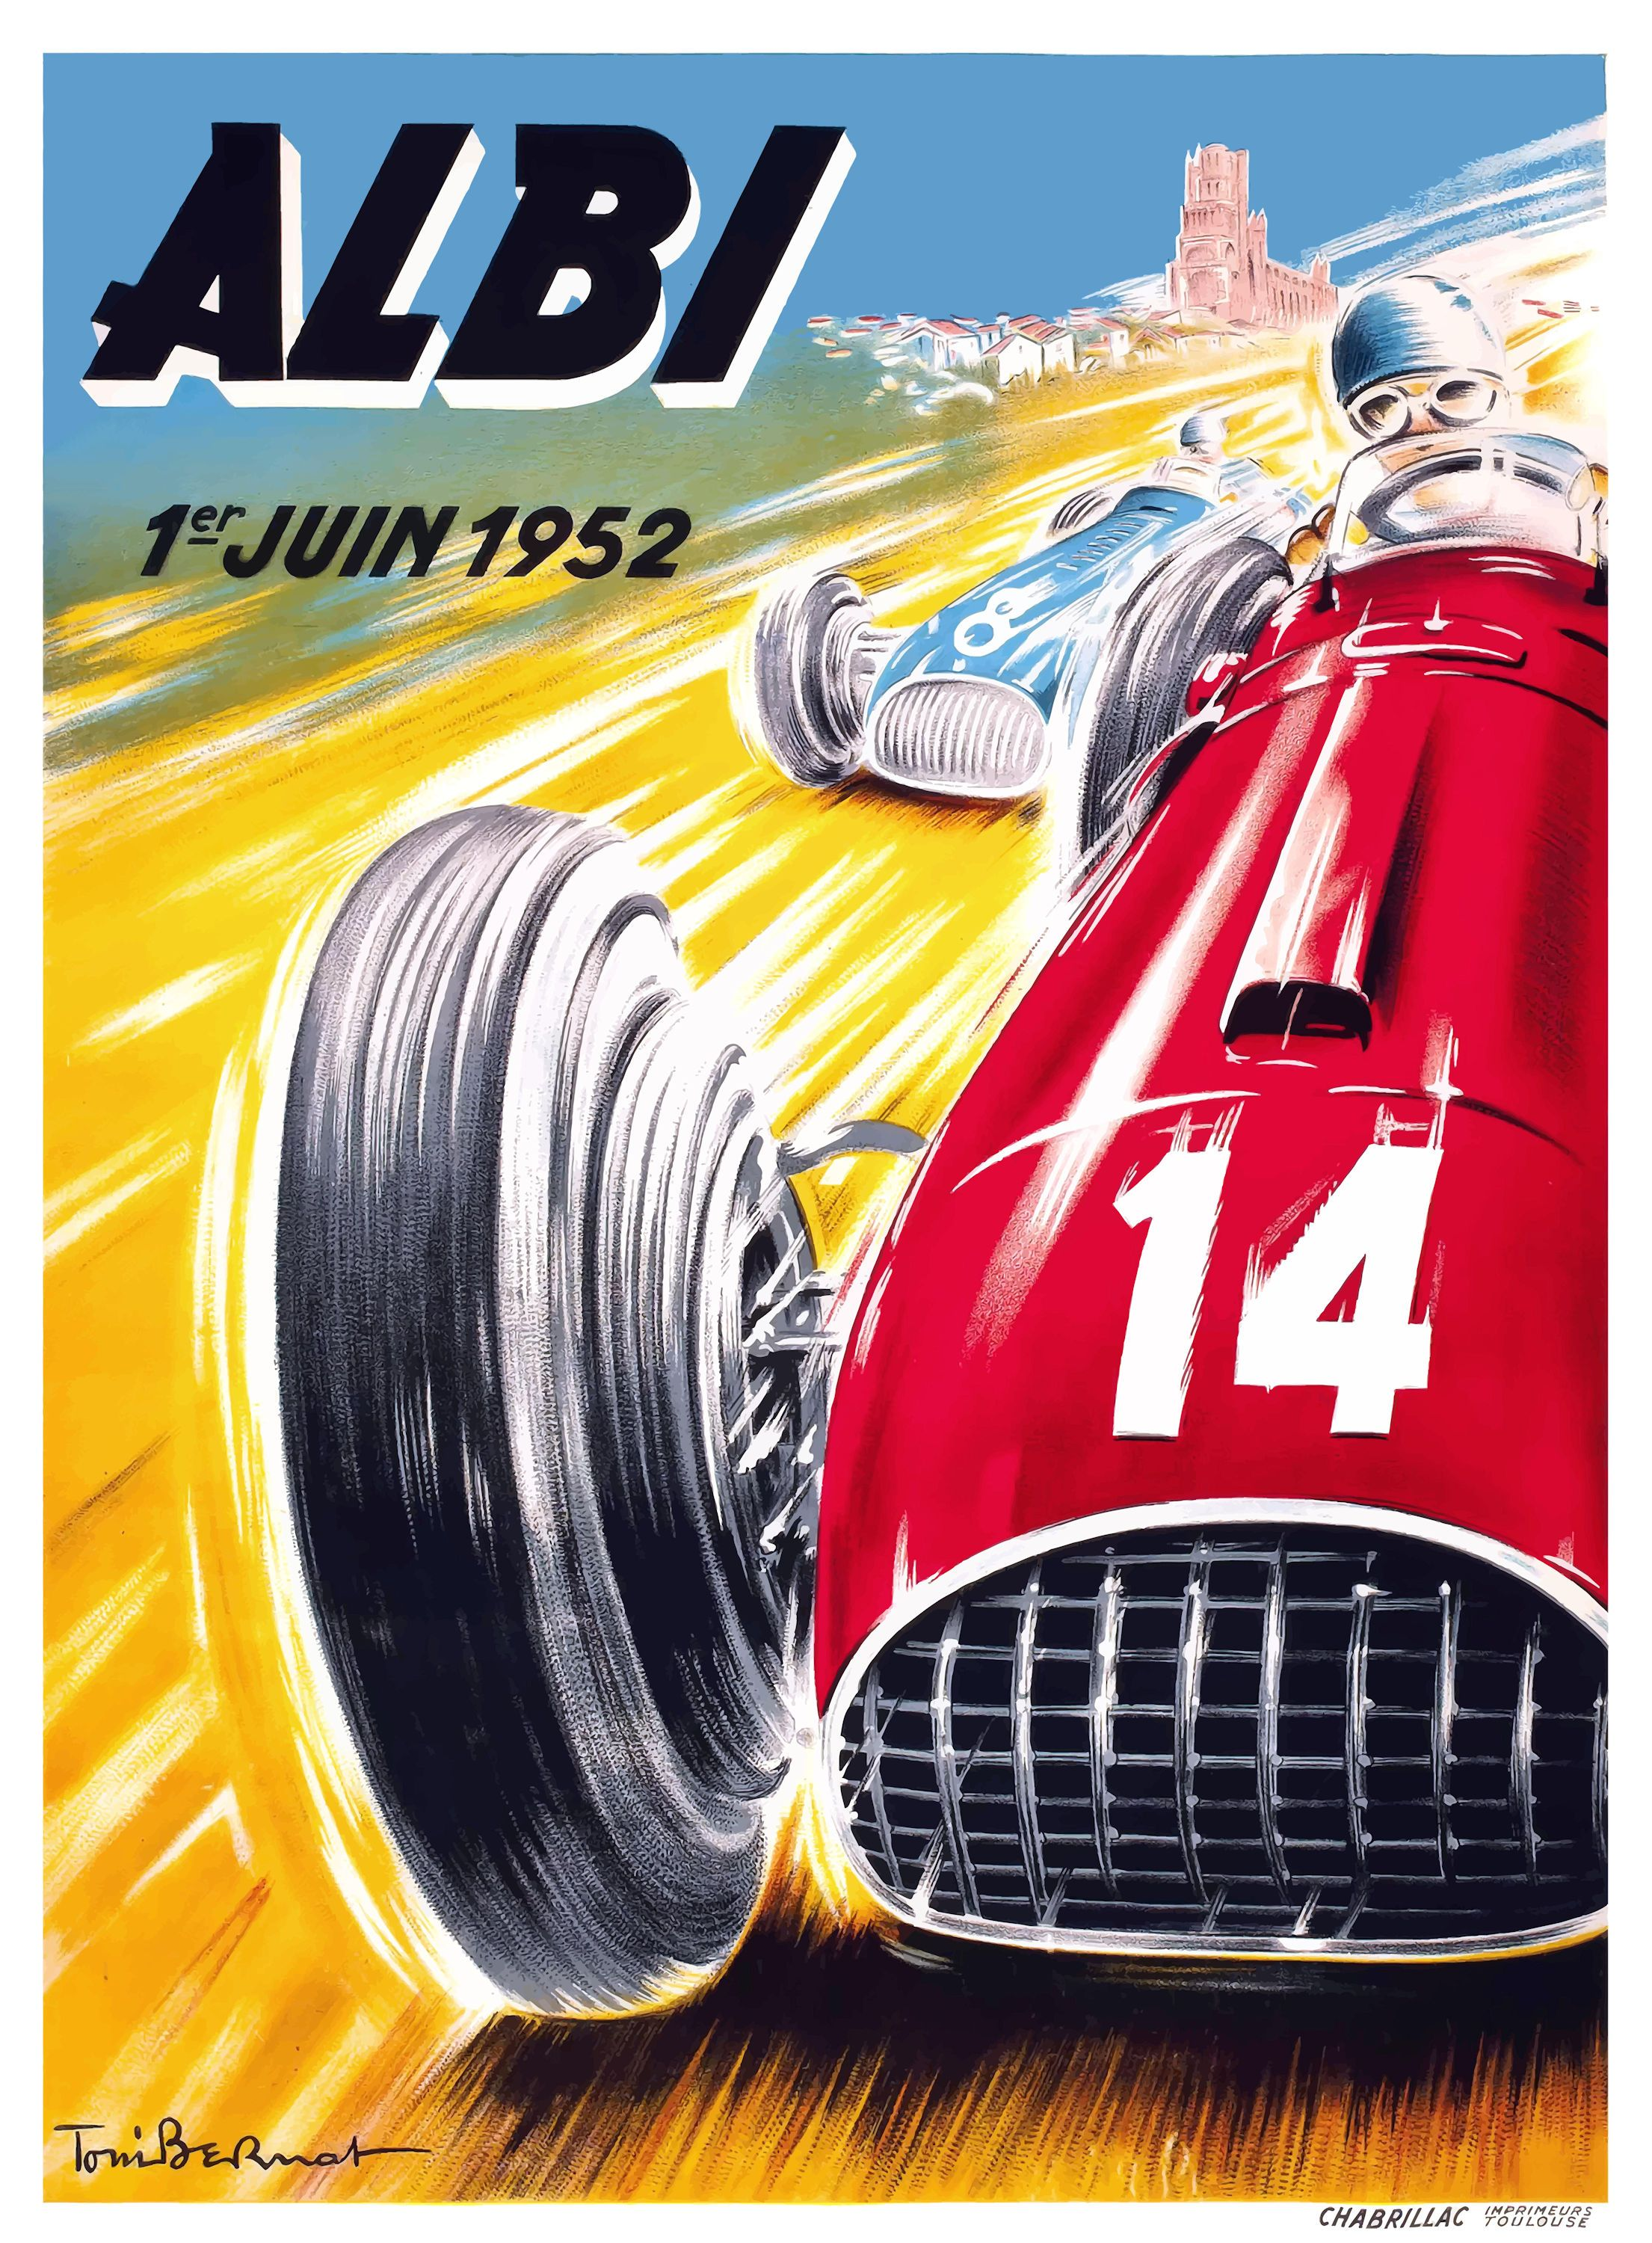 1952 Albi Grand Prix Automobile Race Poster By Retro Graphics In 2020 Auto Racing Posters Vintage Racing Poster Racing Posters